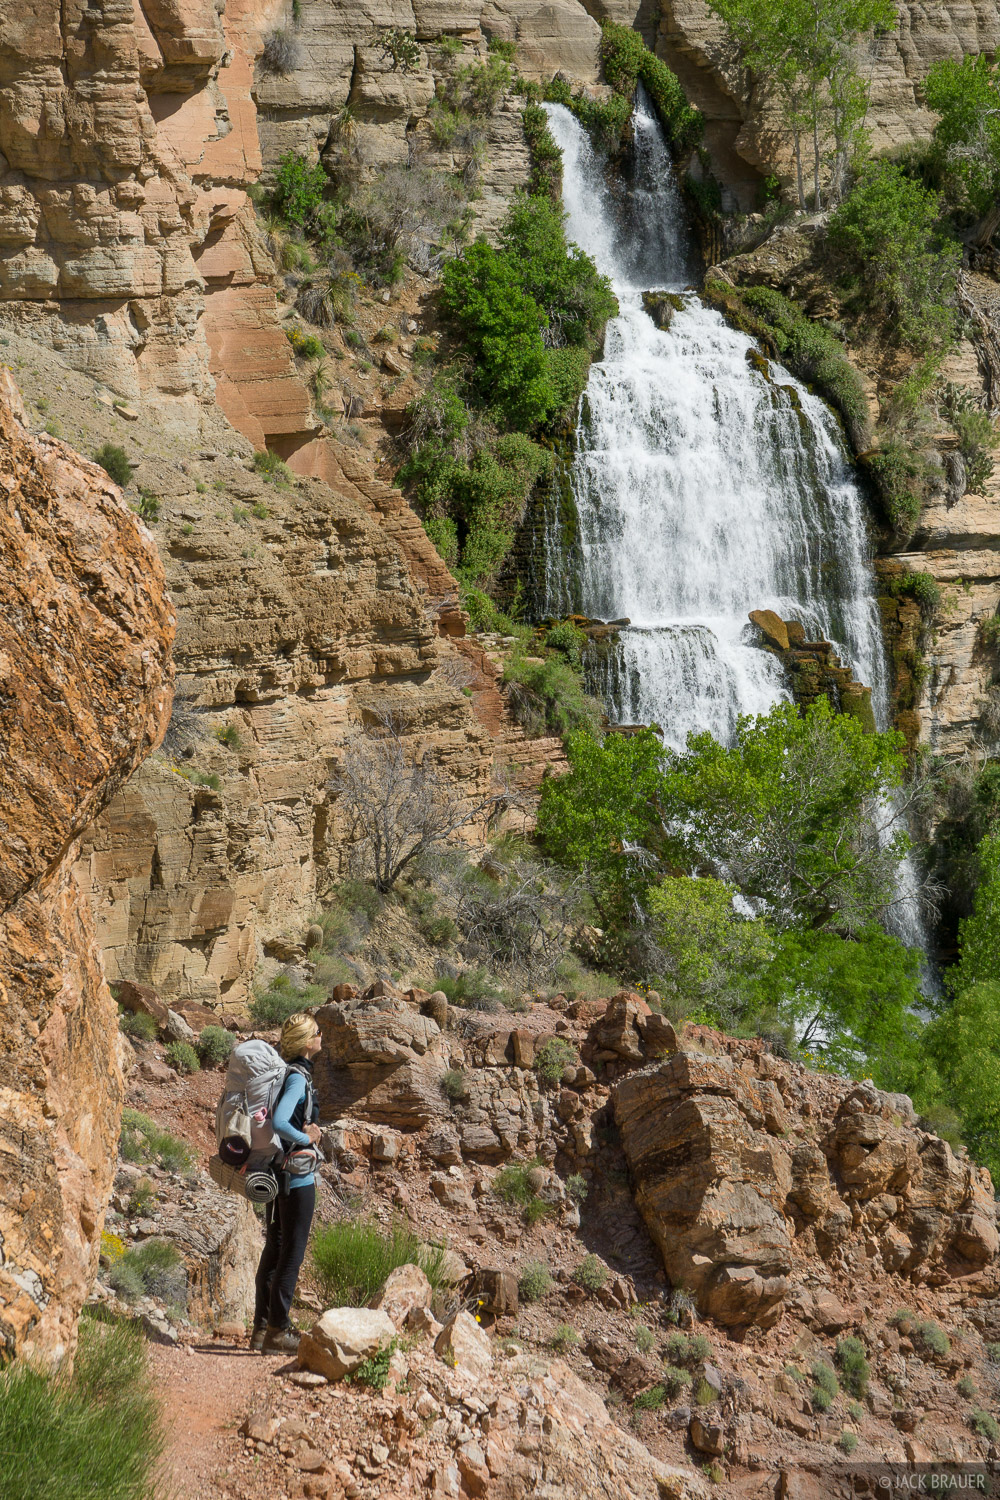 Hiking past the Thunder Spring waterfall.